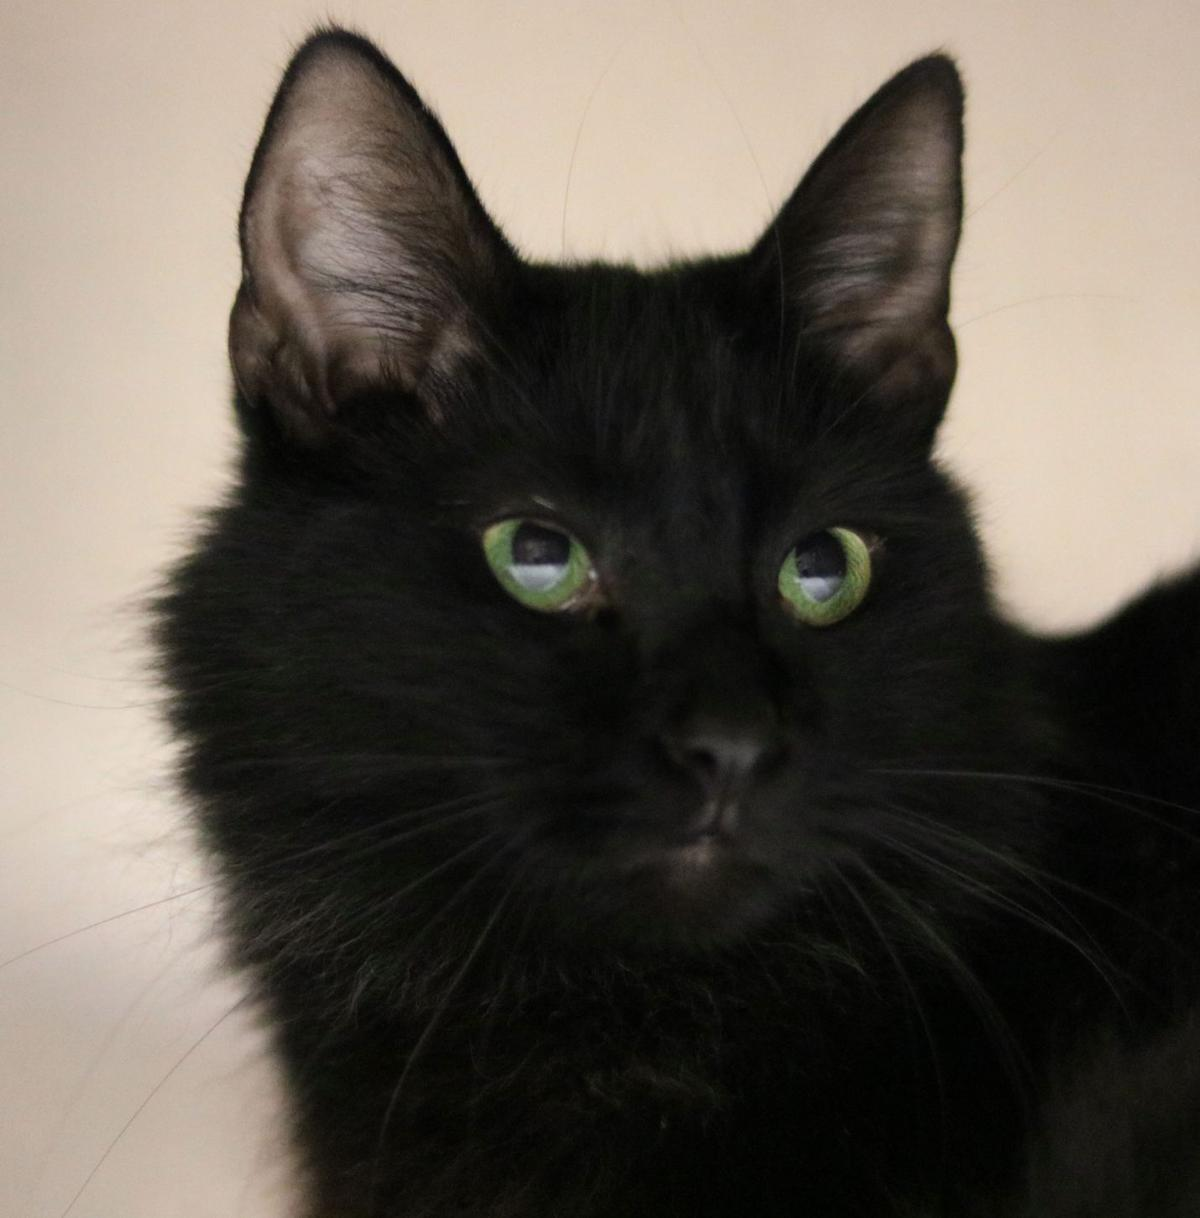 SJ Cat of the Week - May 22, 2019 edition